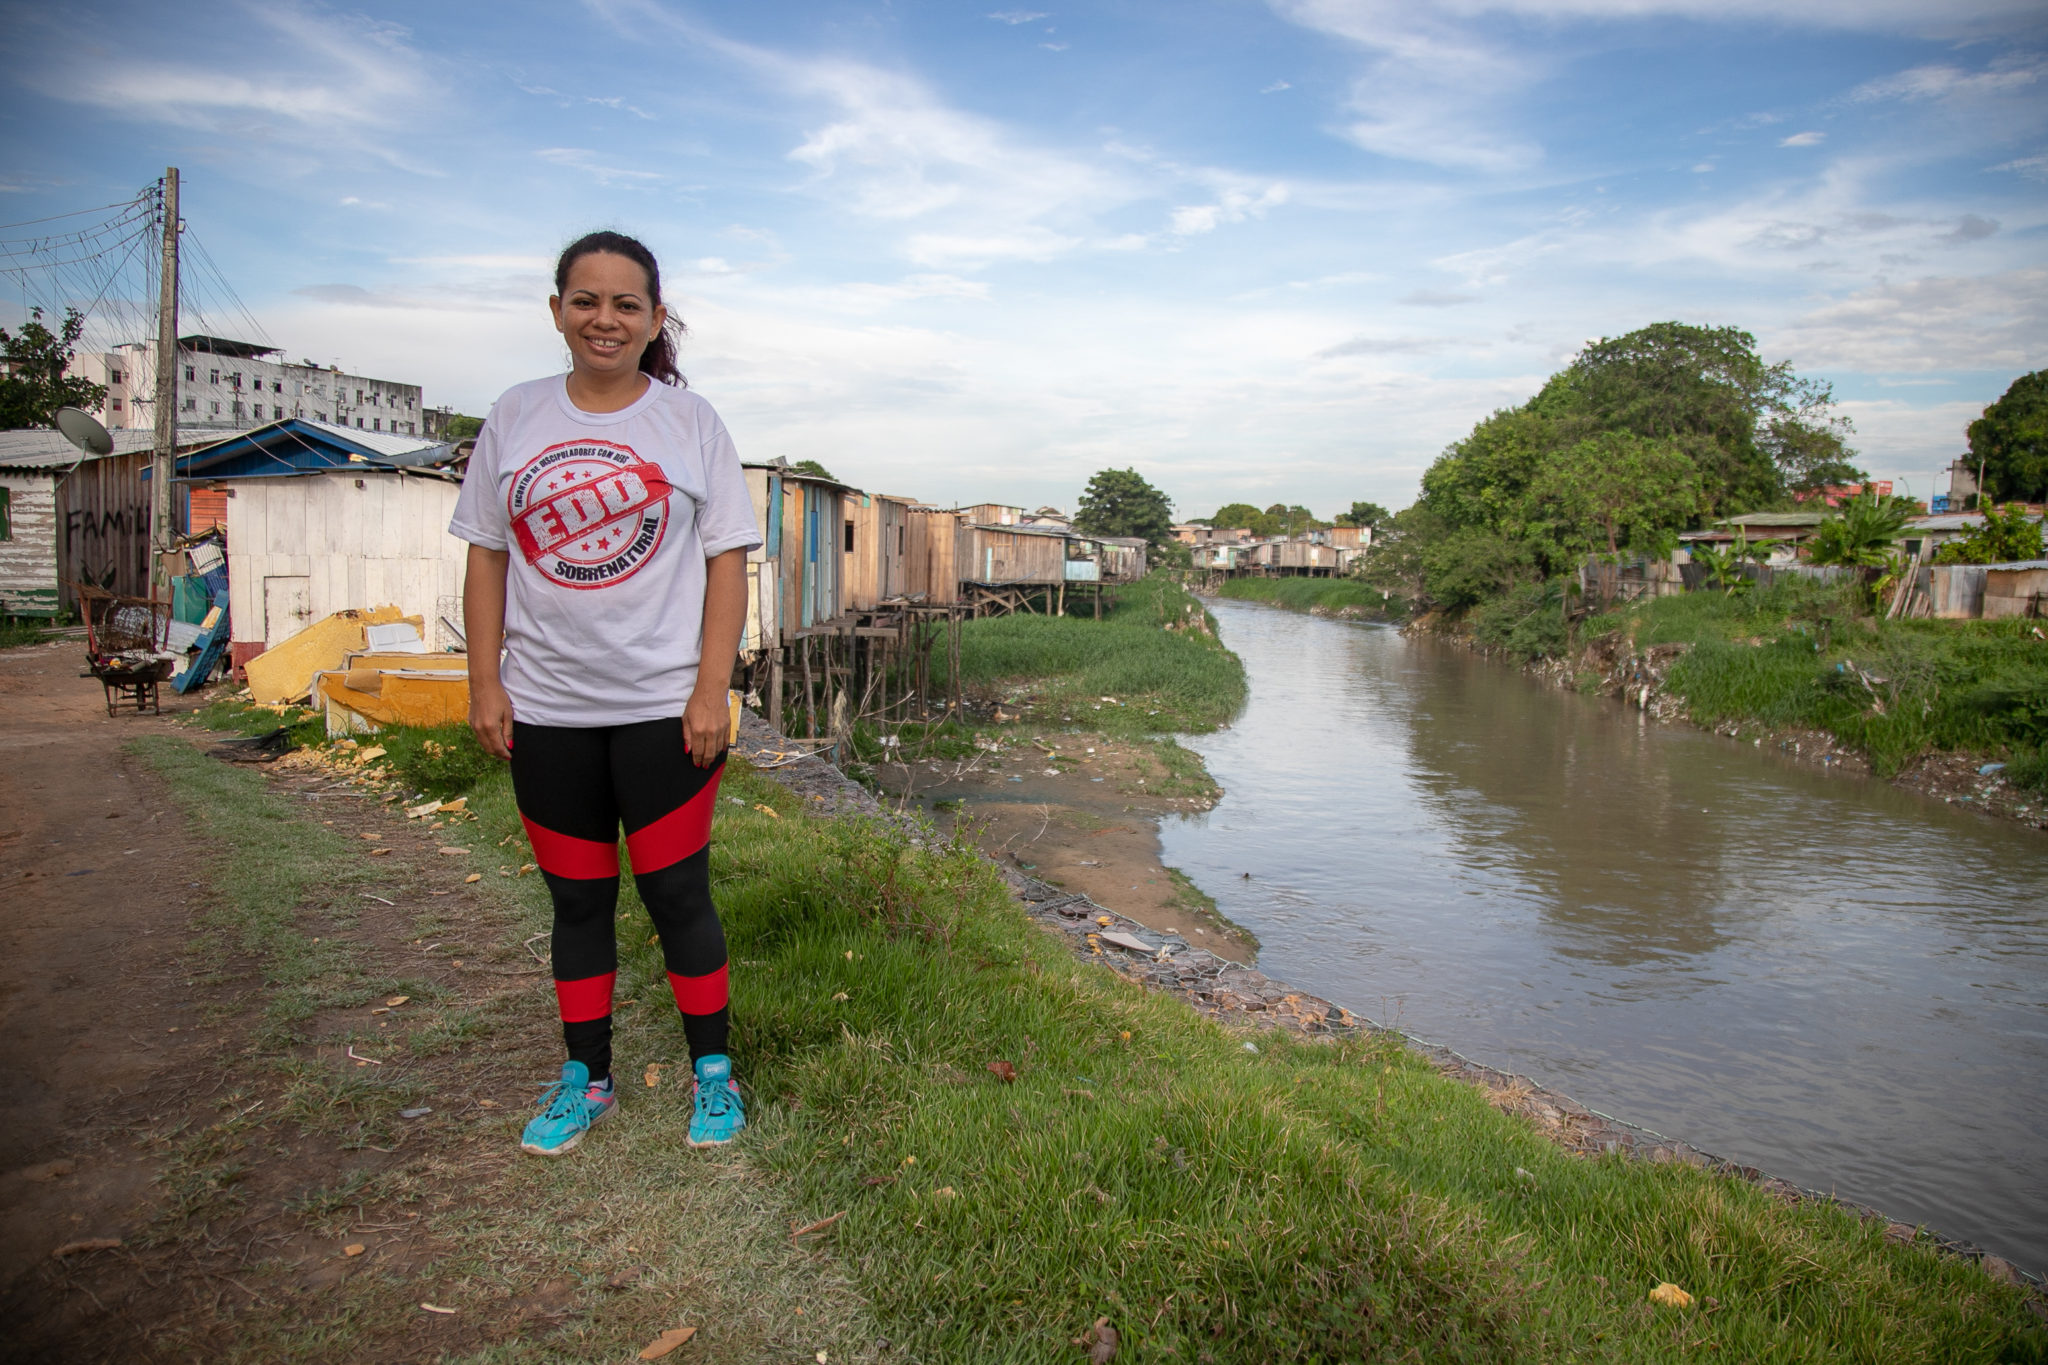 Manaus resident Cristina Santos poses for a photo in the favela community where she lives, in the Raiz neighborhood, an hour's drive from Manaus's famous Amazon Theatre. Image by César Nogueira.